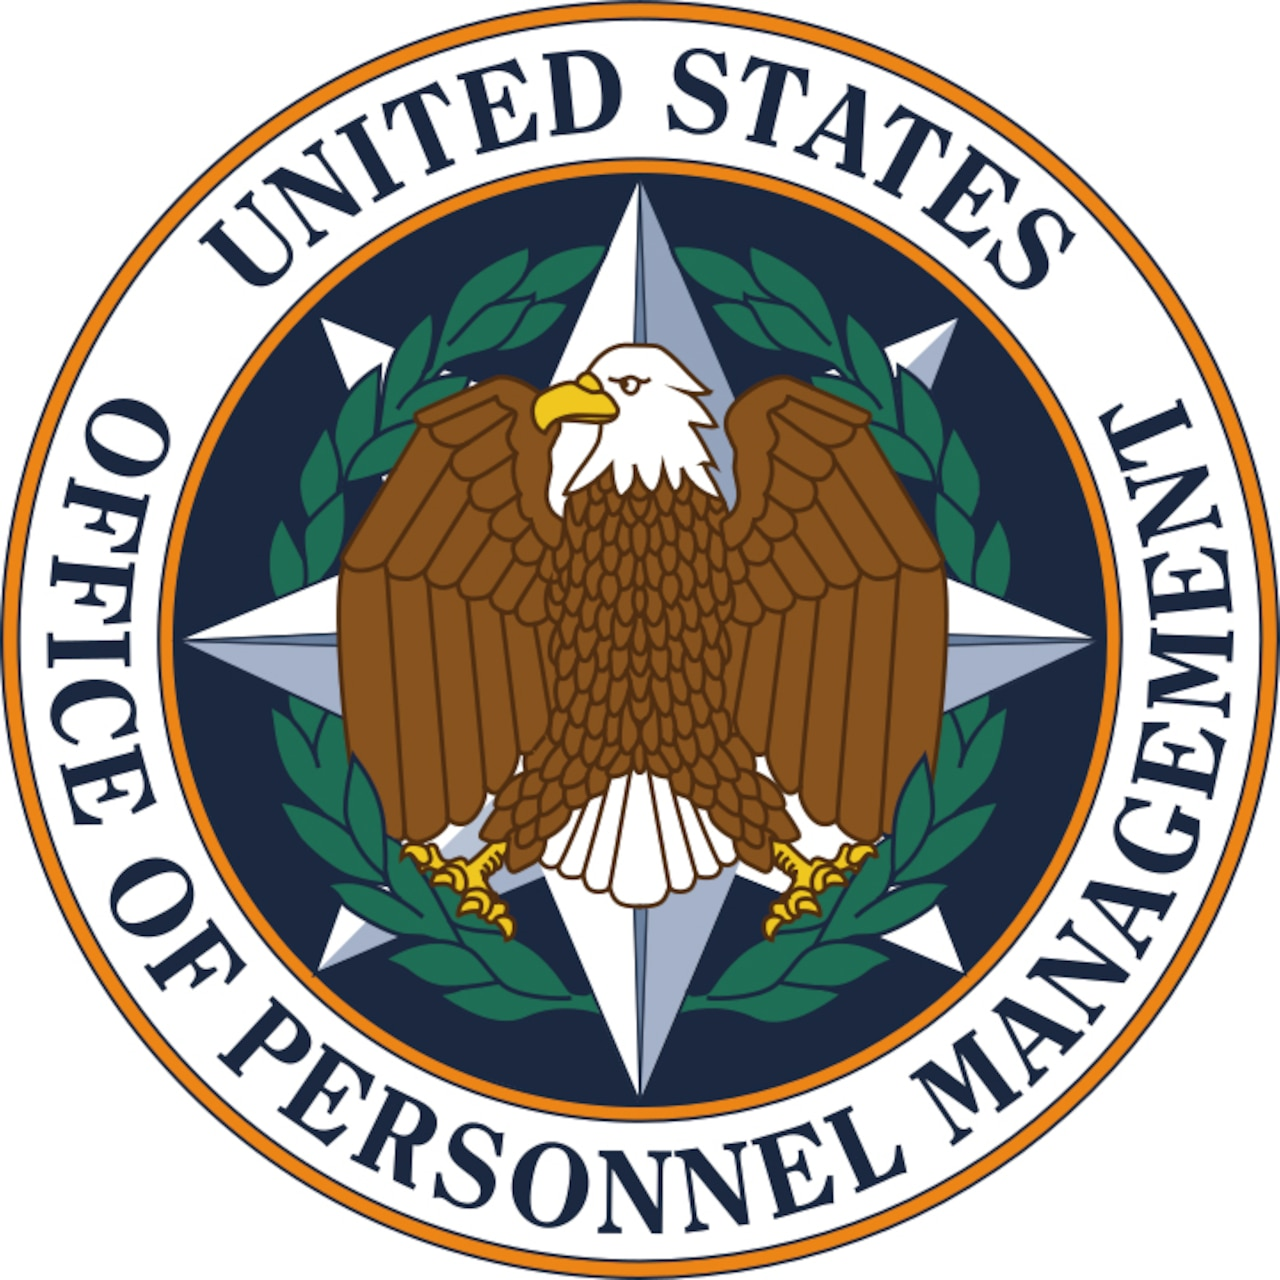 "The Office of Personnel Management seal is a circle, with the words ""United States — Office of Personnel Management"" around the perimeter. On the inside, an eagle is in front of an eight-point star that is surrounded by leaves."